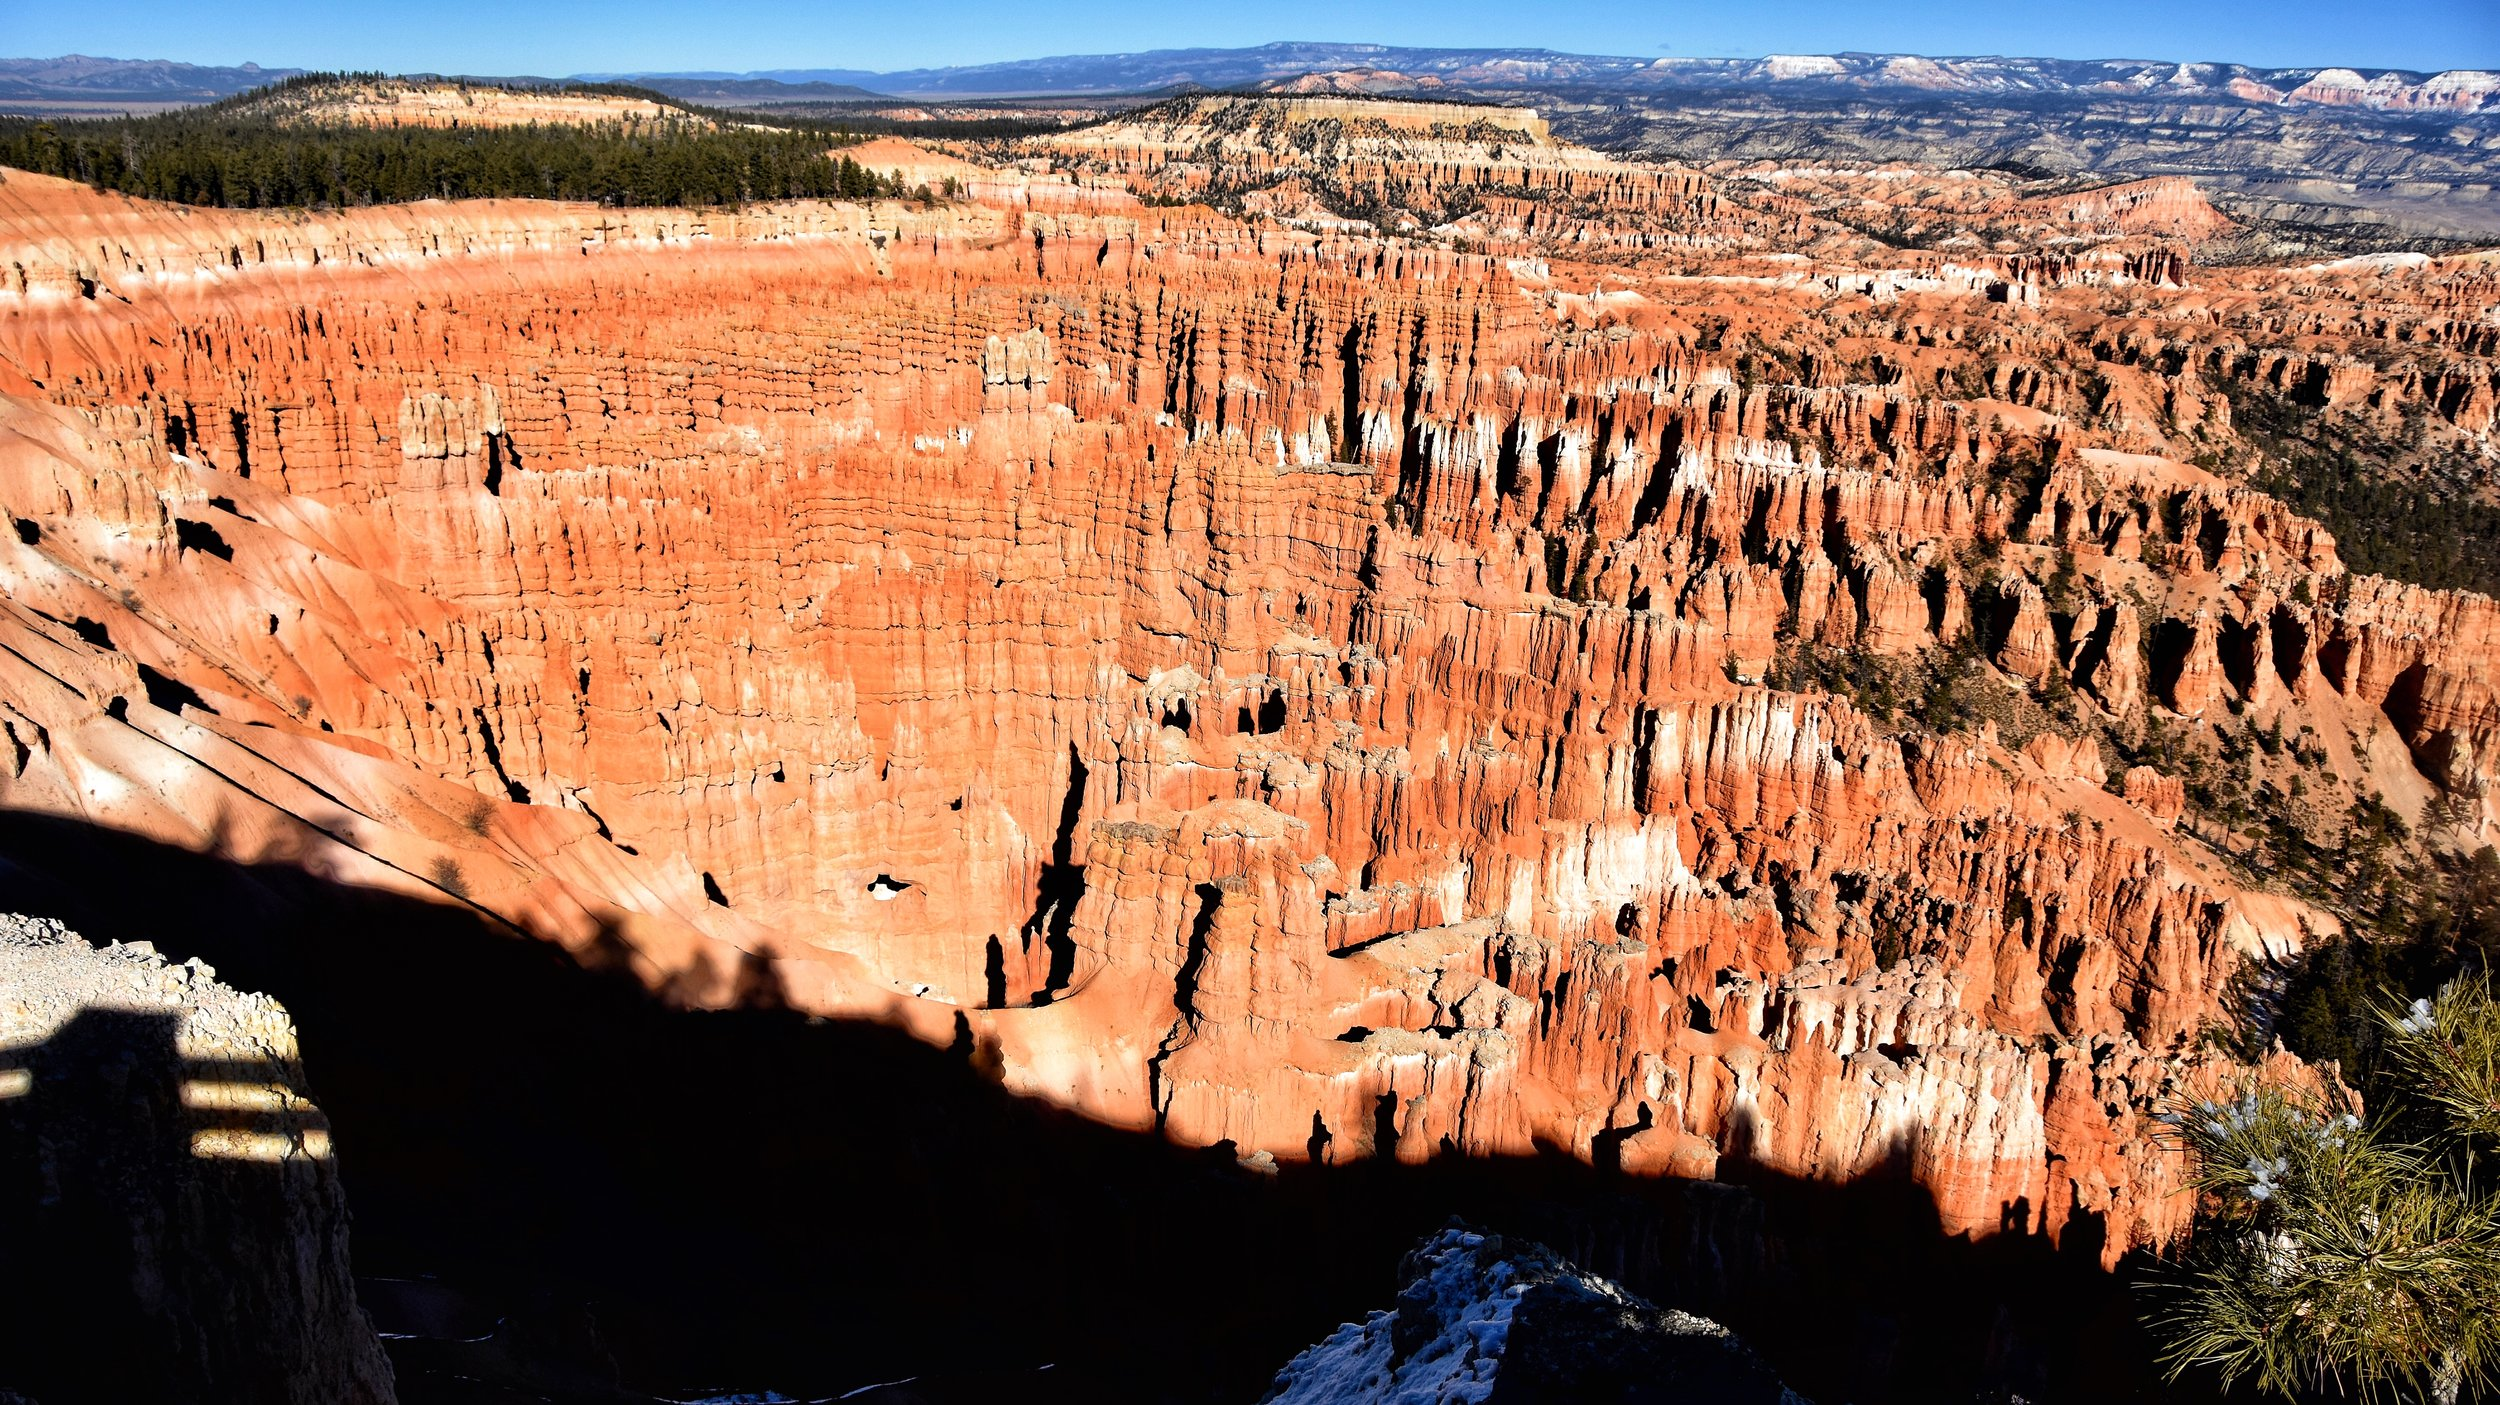 The Bryce Amphitheater viewed from Inspiration Point.